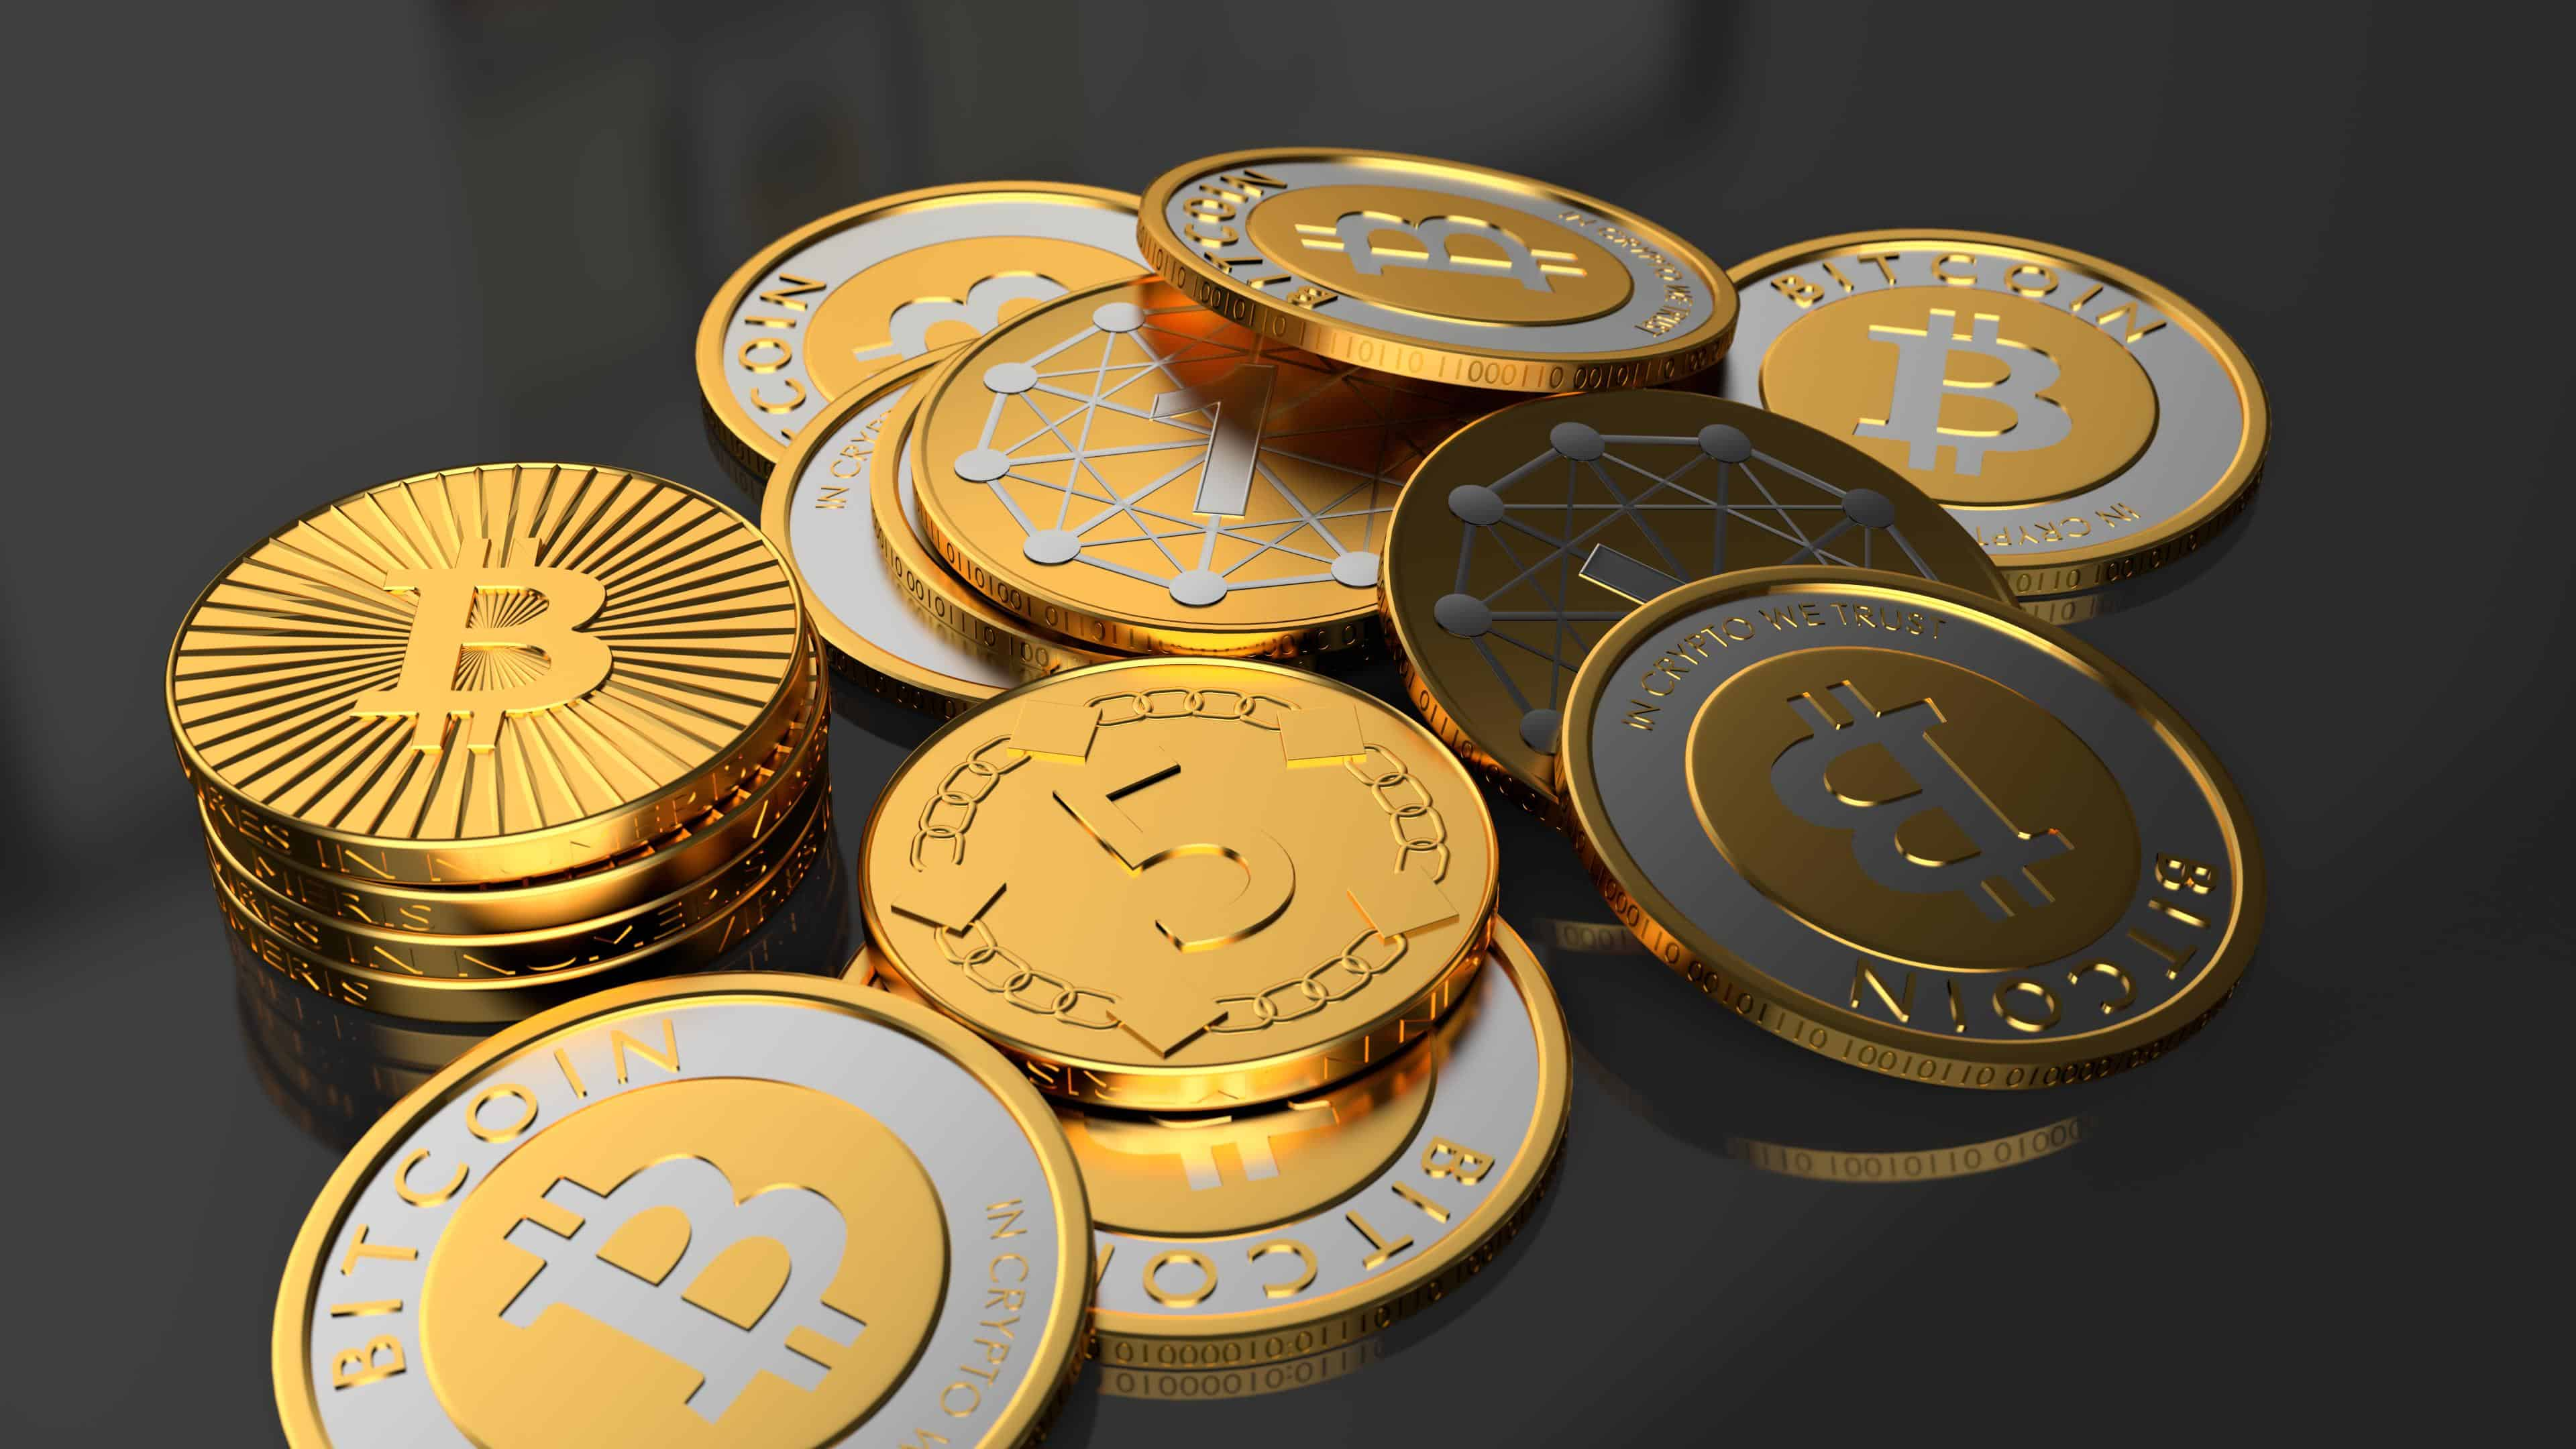 bitcoin coins uhd 4k wallpaper